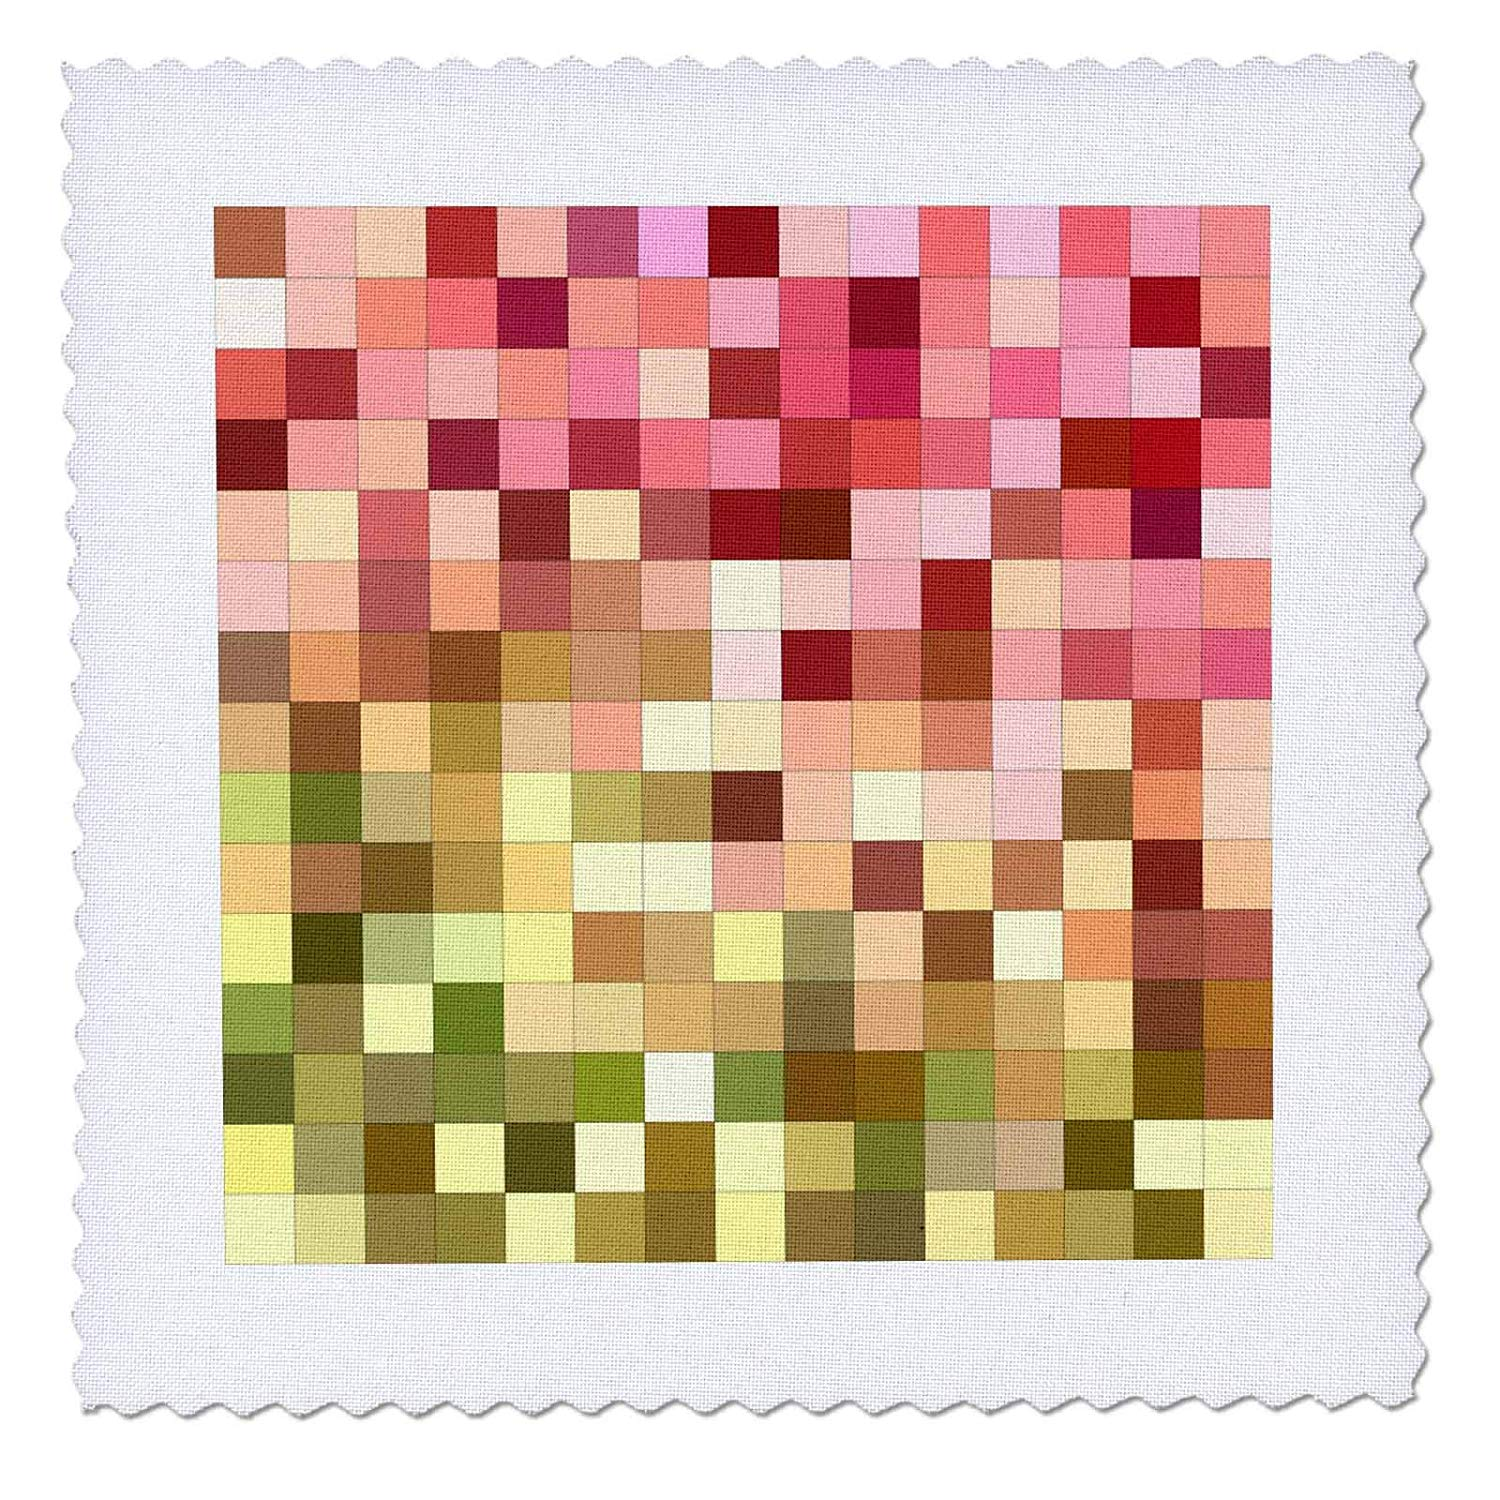 3D Rose Reen Swallowtail Butterfly Square Quilt 6 x 6